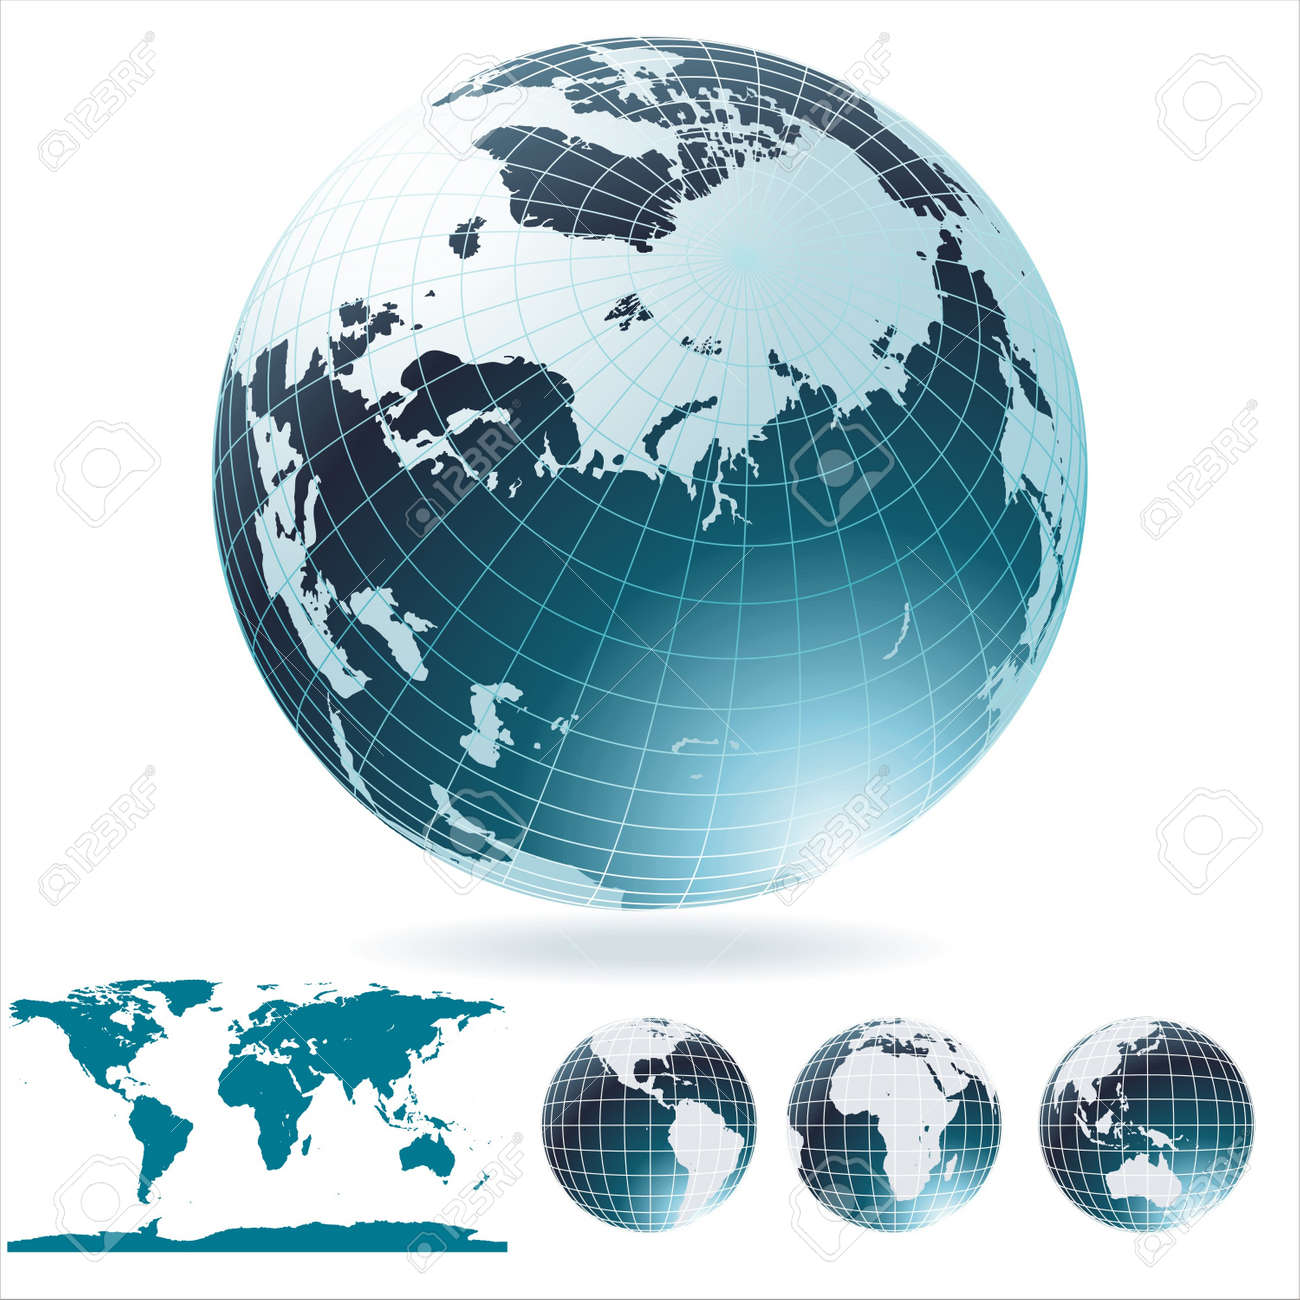 Globe And Detail Map Of The World Royalty Free Cliparts Vectors - Globe map of the world